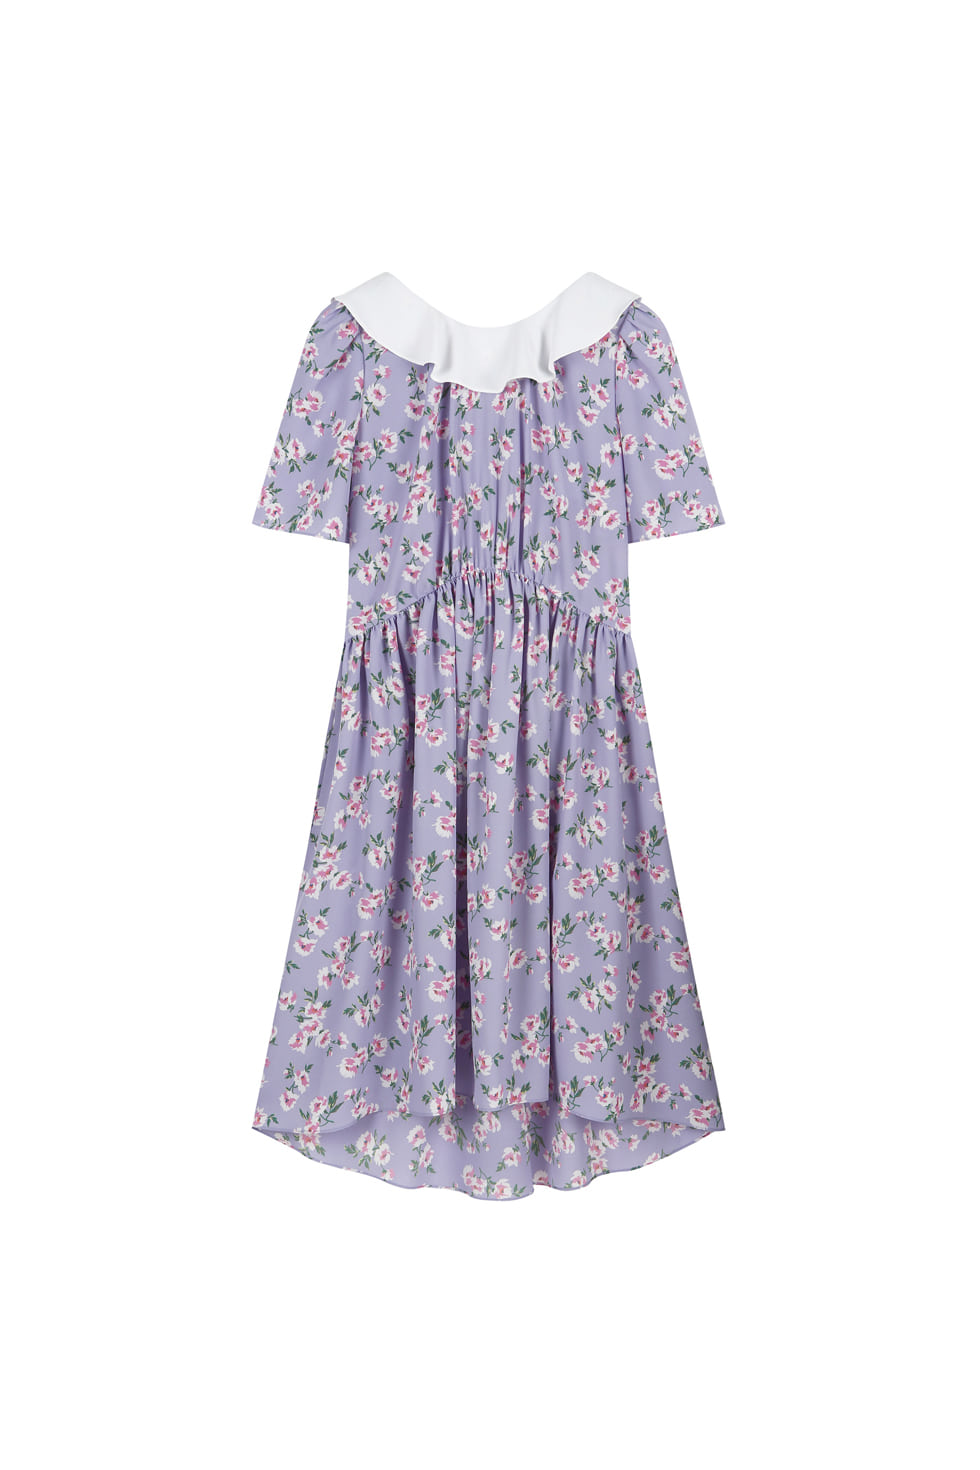 BACK RIBBON FLORAL DRESS - PURPLE